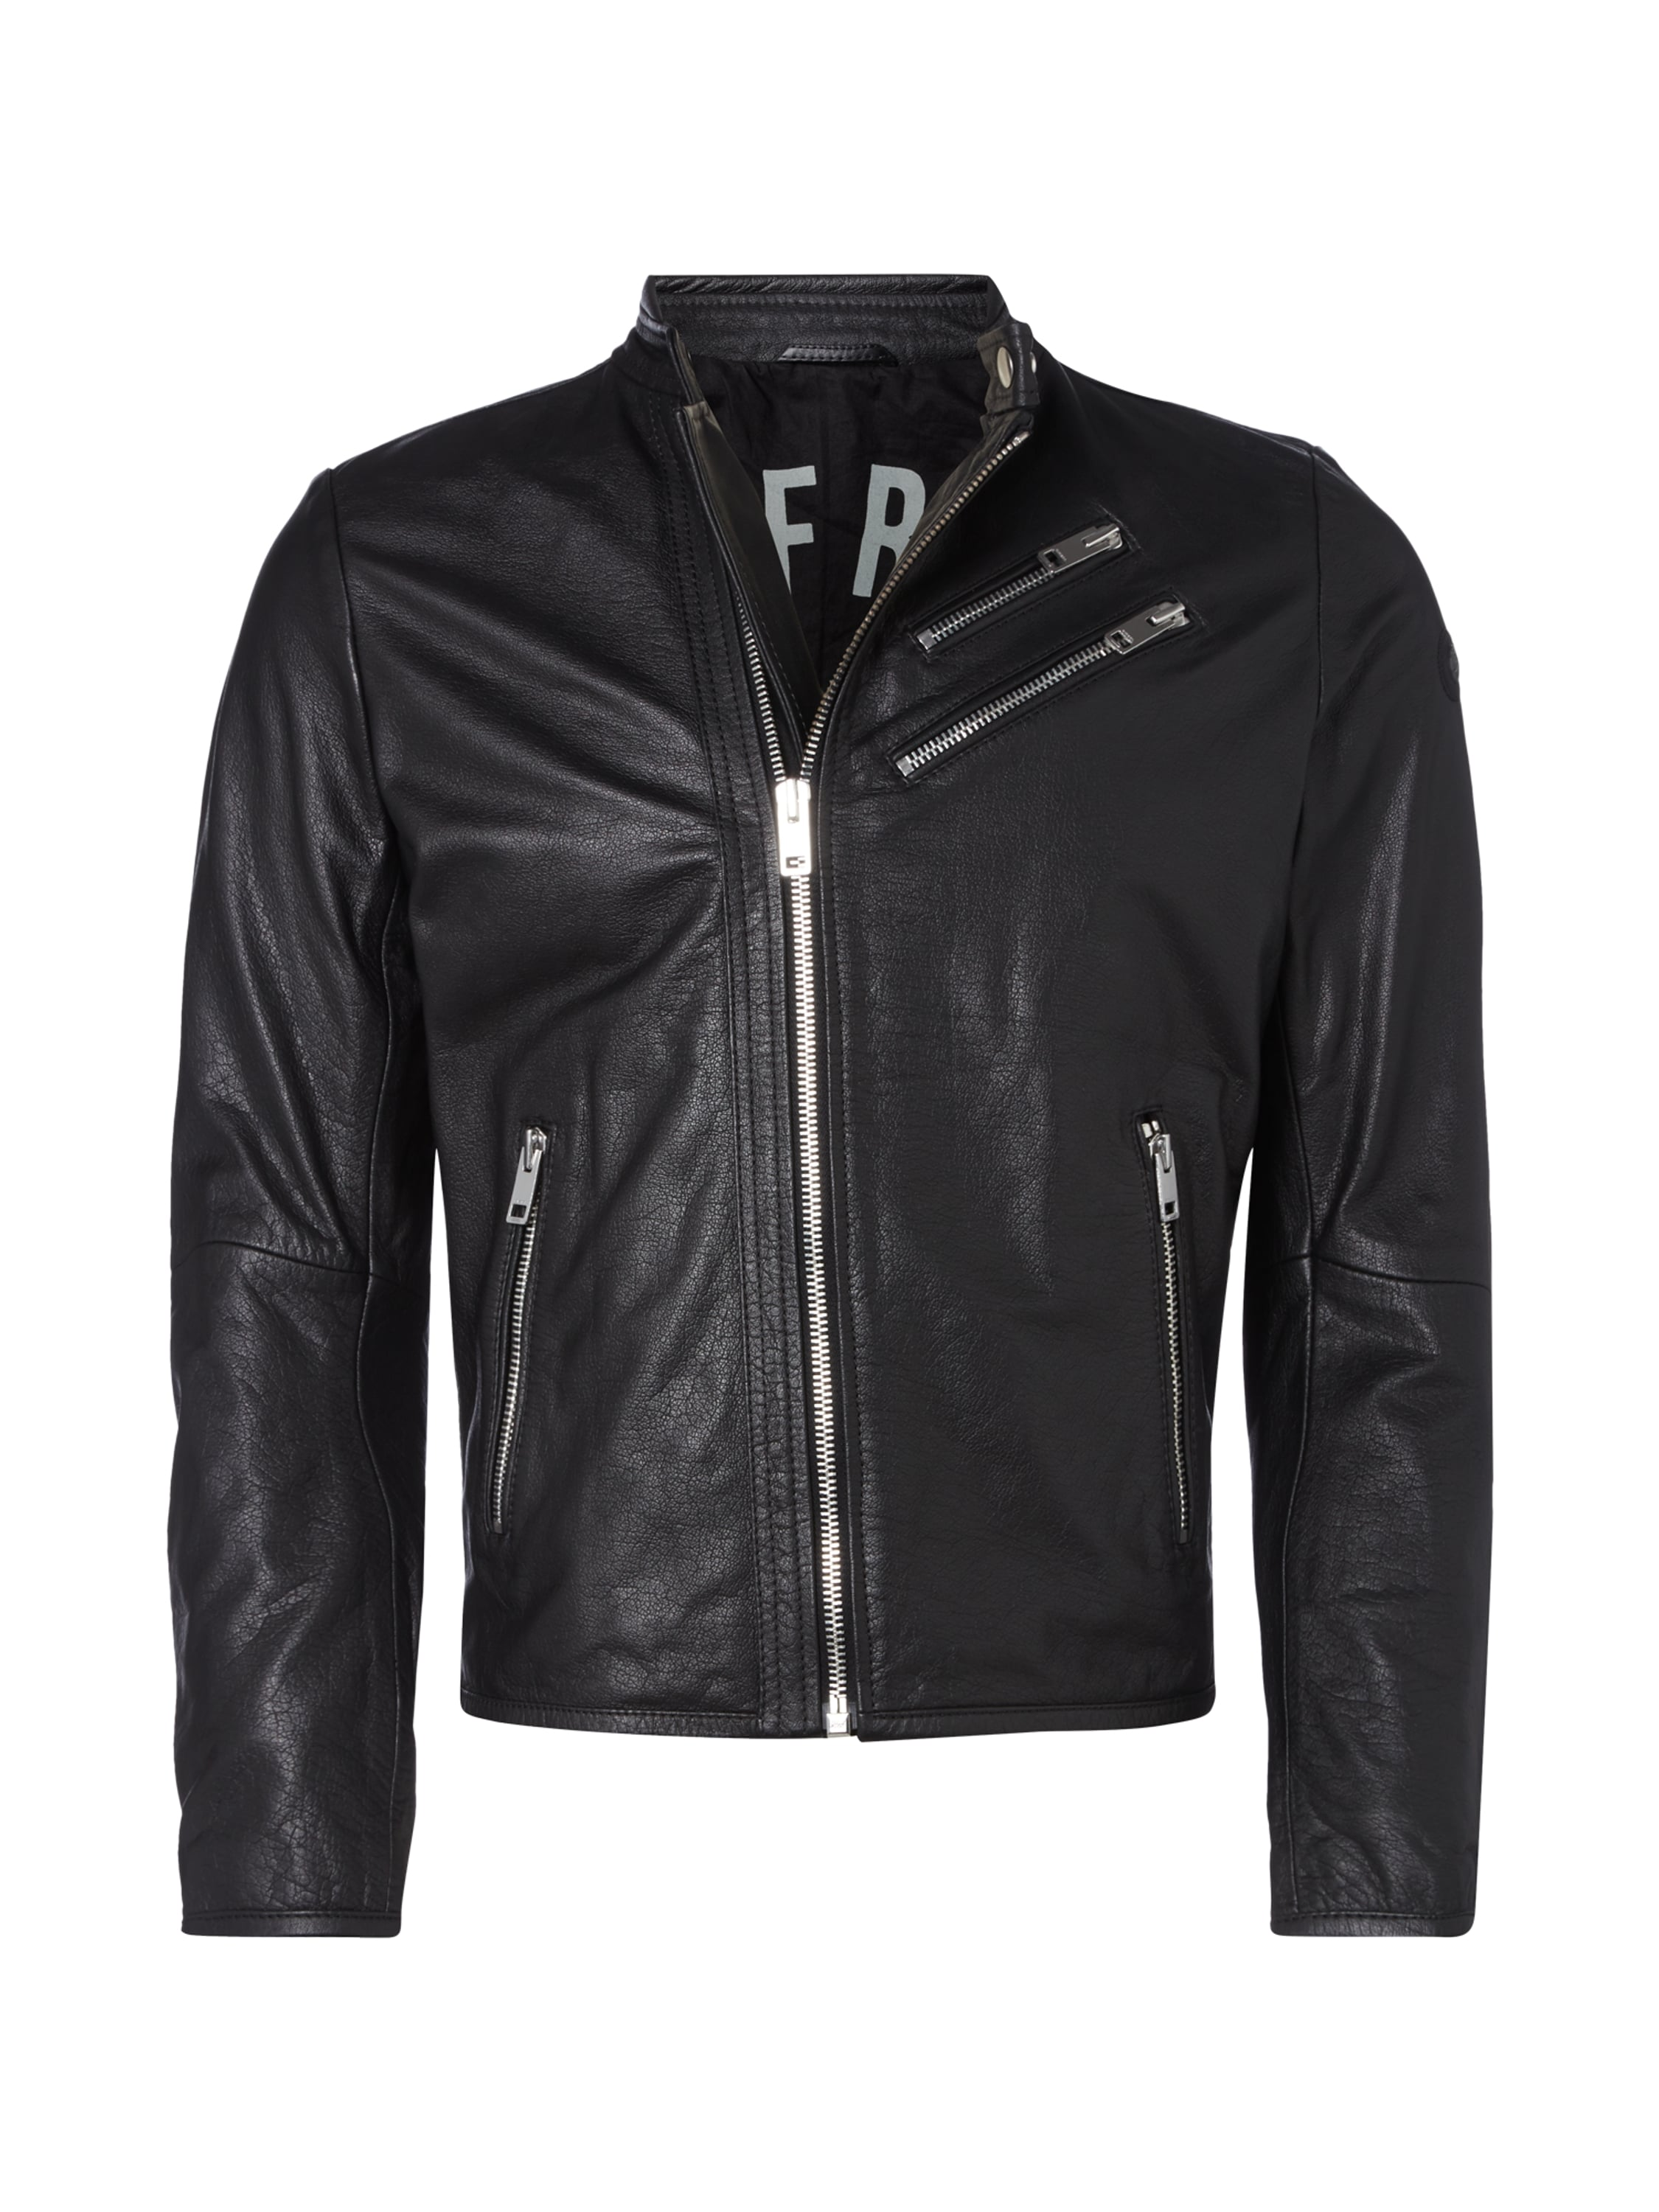 diesel lederjacke im biker look in grau schwarz online. Black Bedroom Furniture Sets. Home Design Ideas